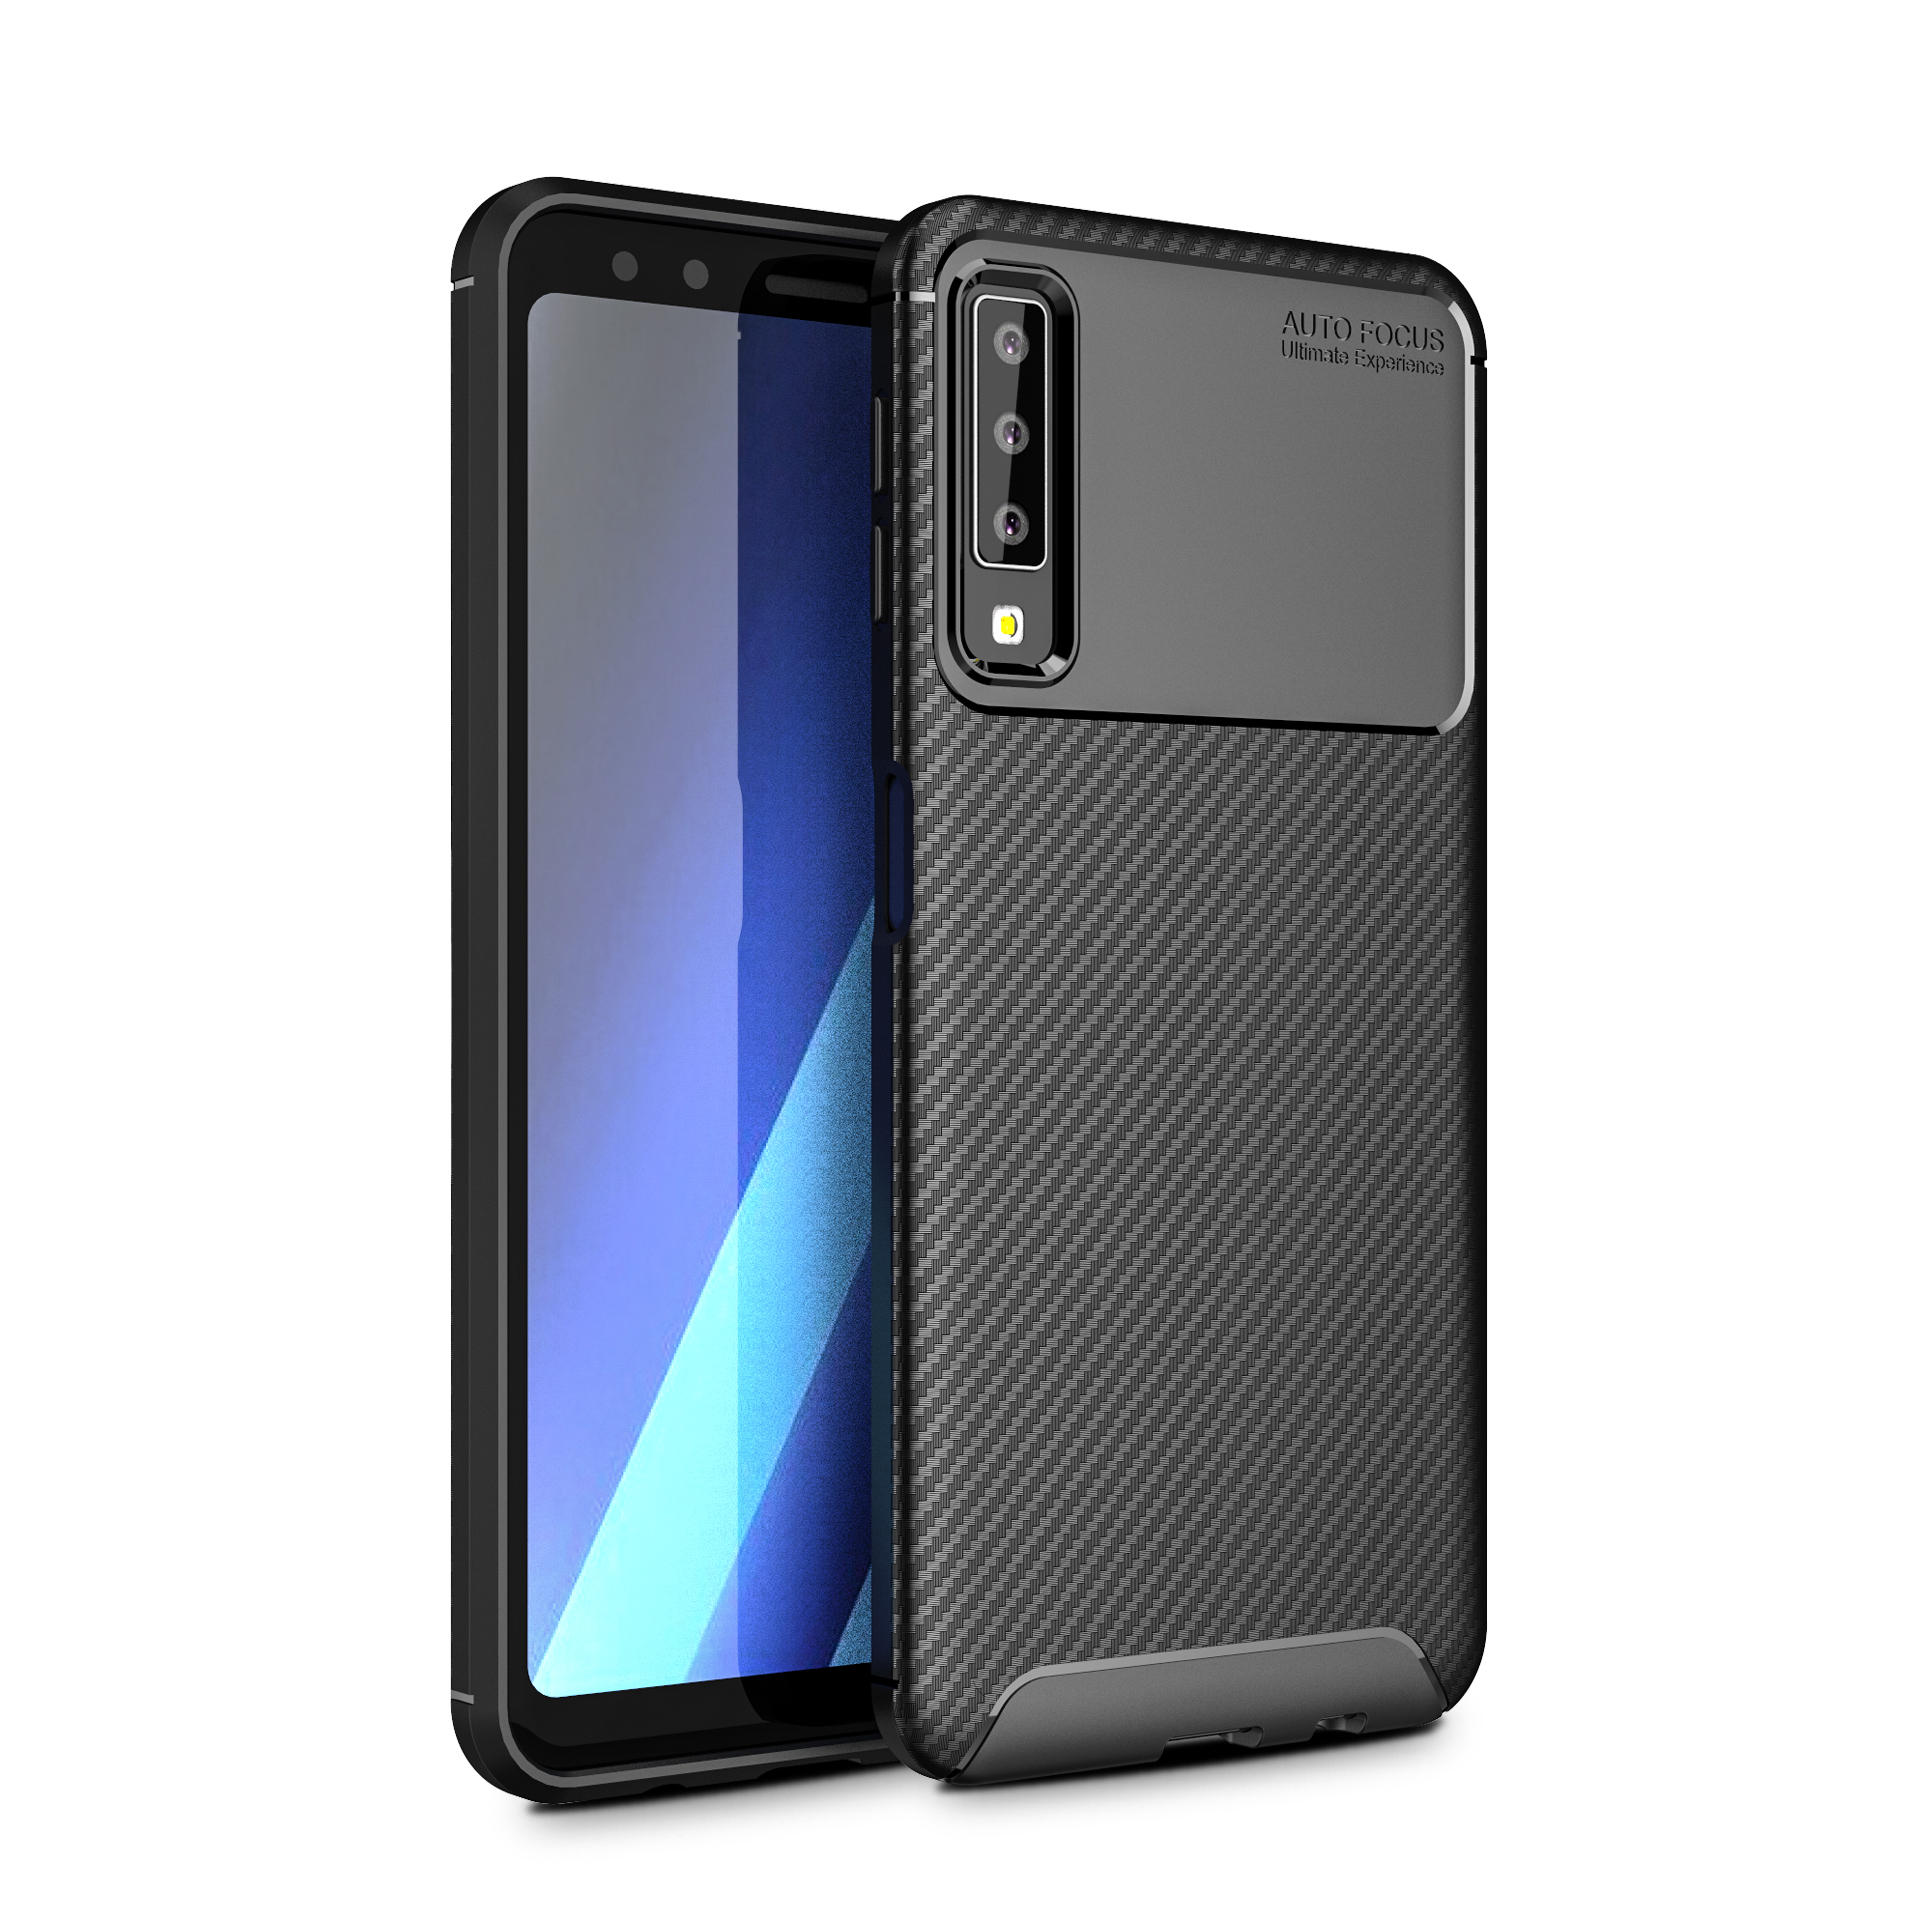 finest selection c04c2 a0e61 Bakeey Protective Case For Samsung Galaxy A7 2018 Carbon Fiber Fingerprint  Resistant Soft TPU Back Cover